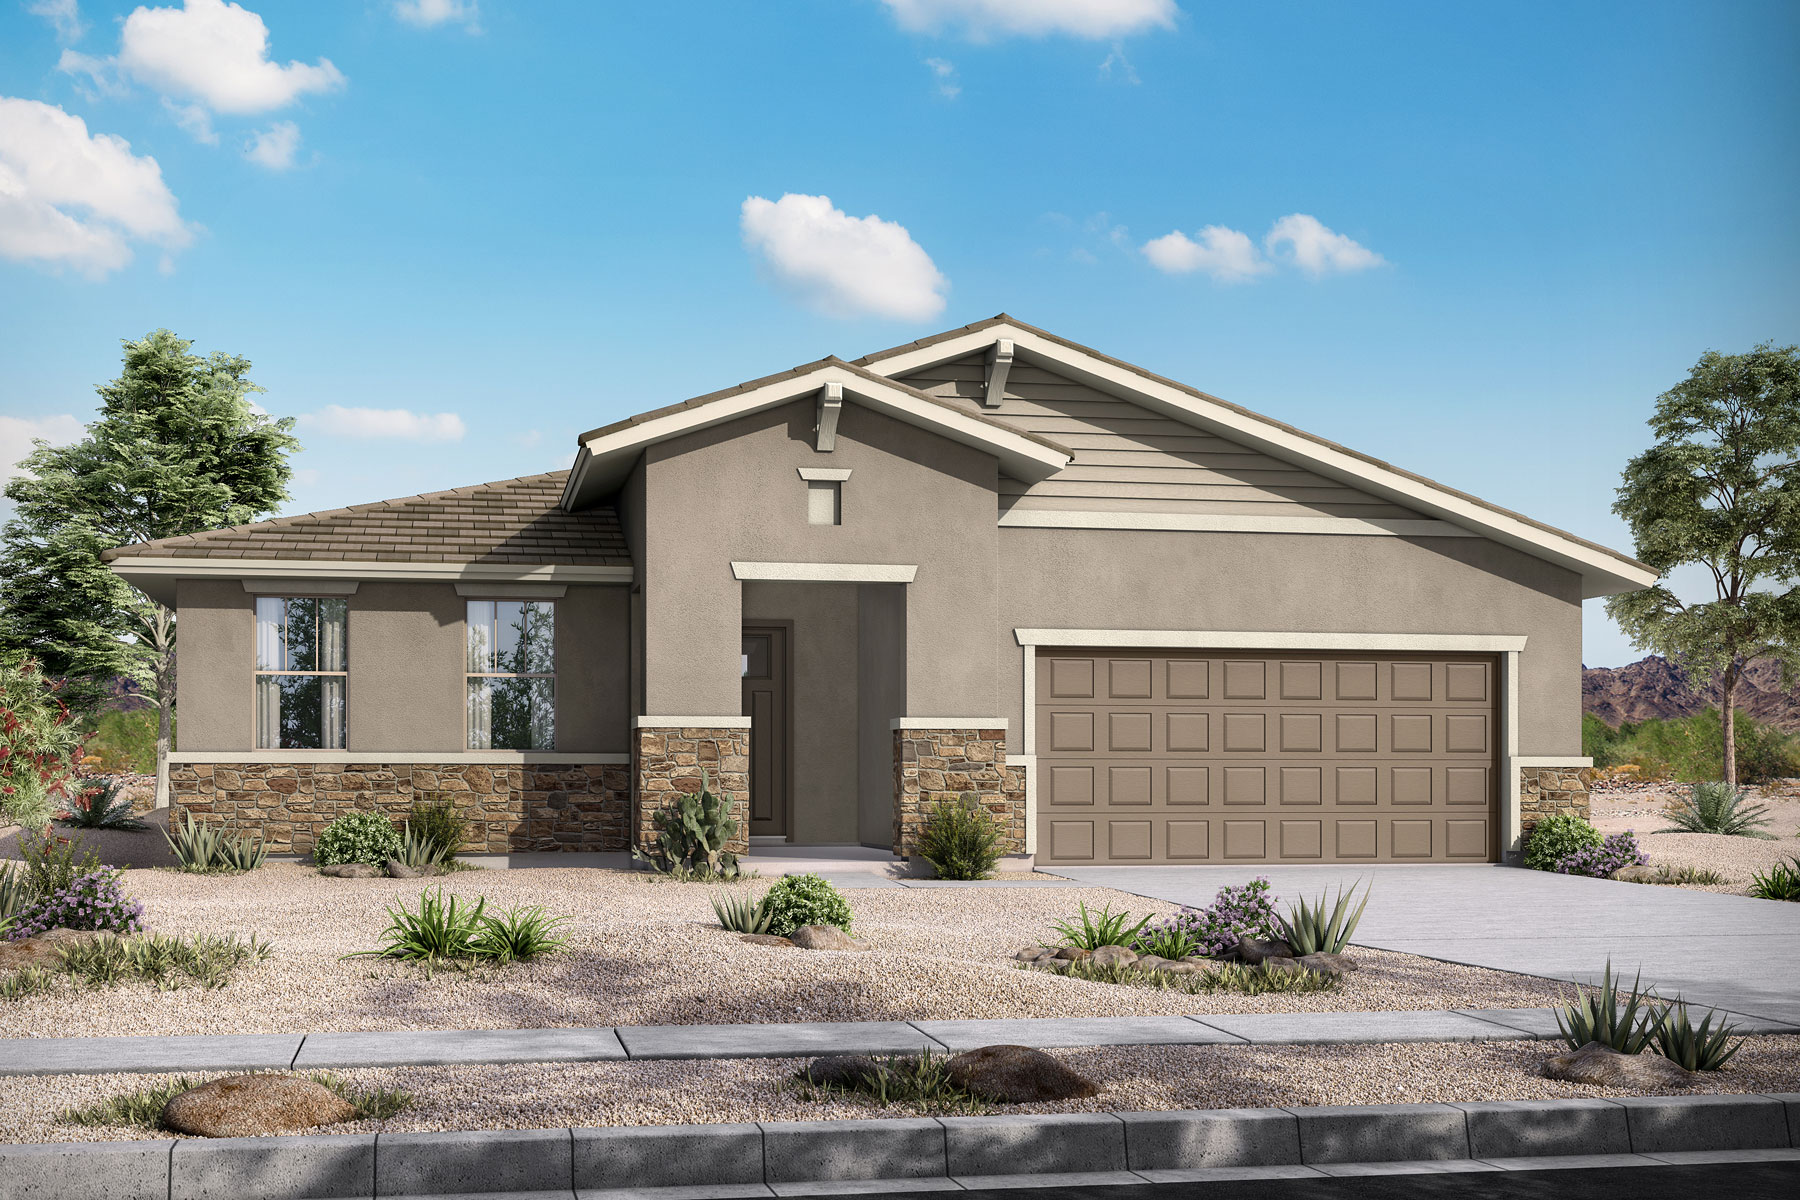 Bellwood Plan PHX_AzureCanyon_Bellwood_Craftsman at Azure Canyon in Goodyear Arizona by Mattamy Homes